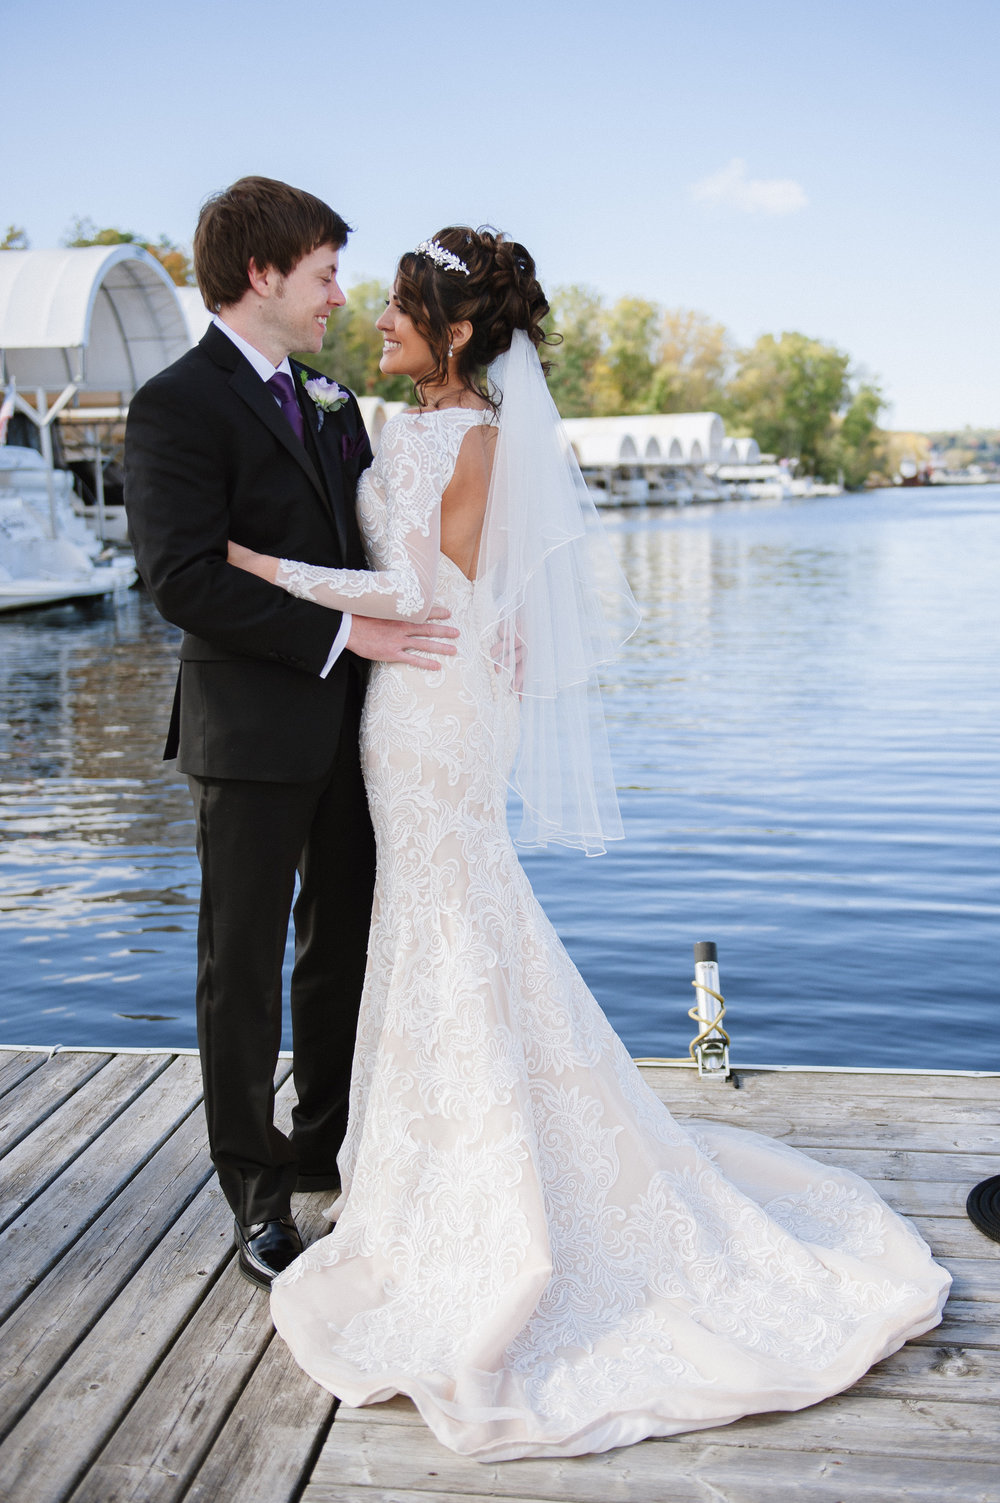 bride and groom portraits on the dock | St. Croix river | tiara bridal hair piece | Dillinger Studios Minneapolis Photographer | Mexican American fusion wedding | Sixpence Events & Planning Minnesota wedding planner .jpg